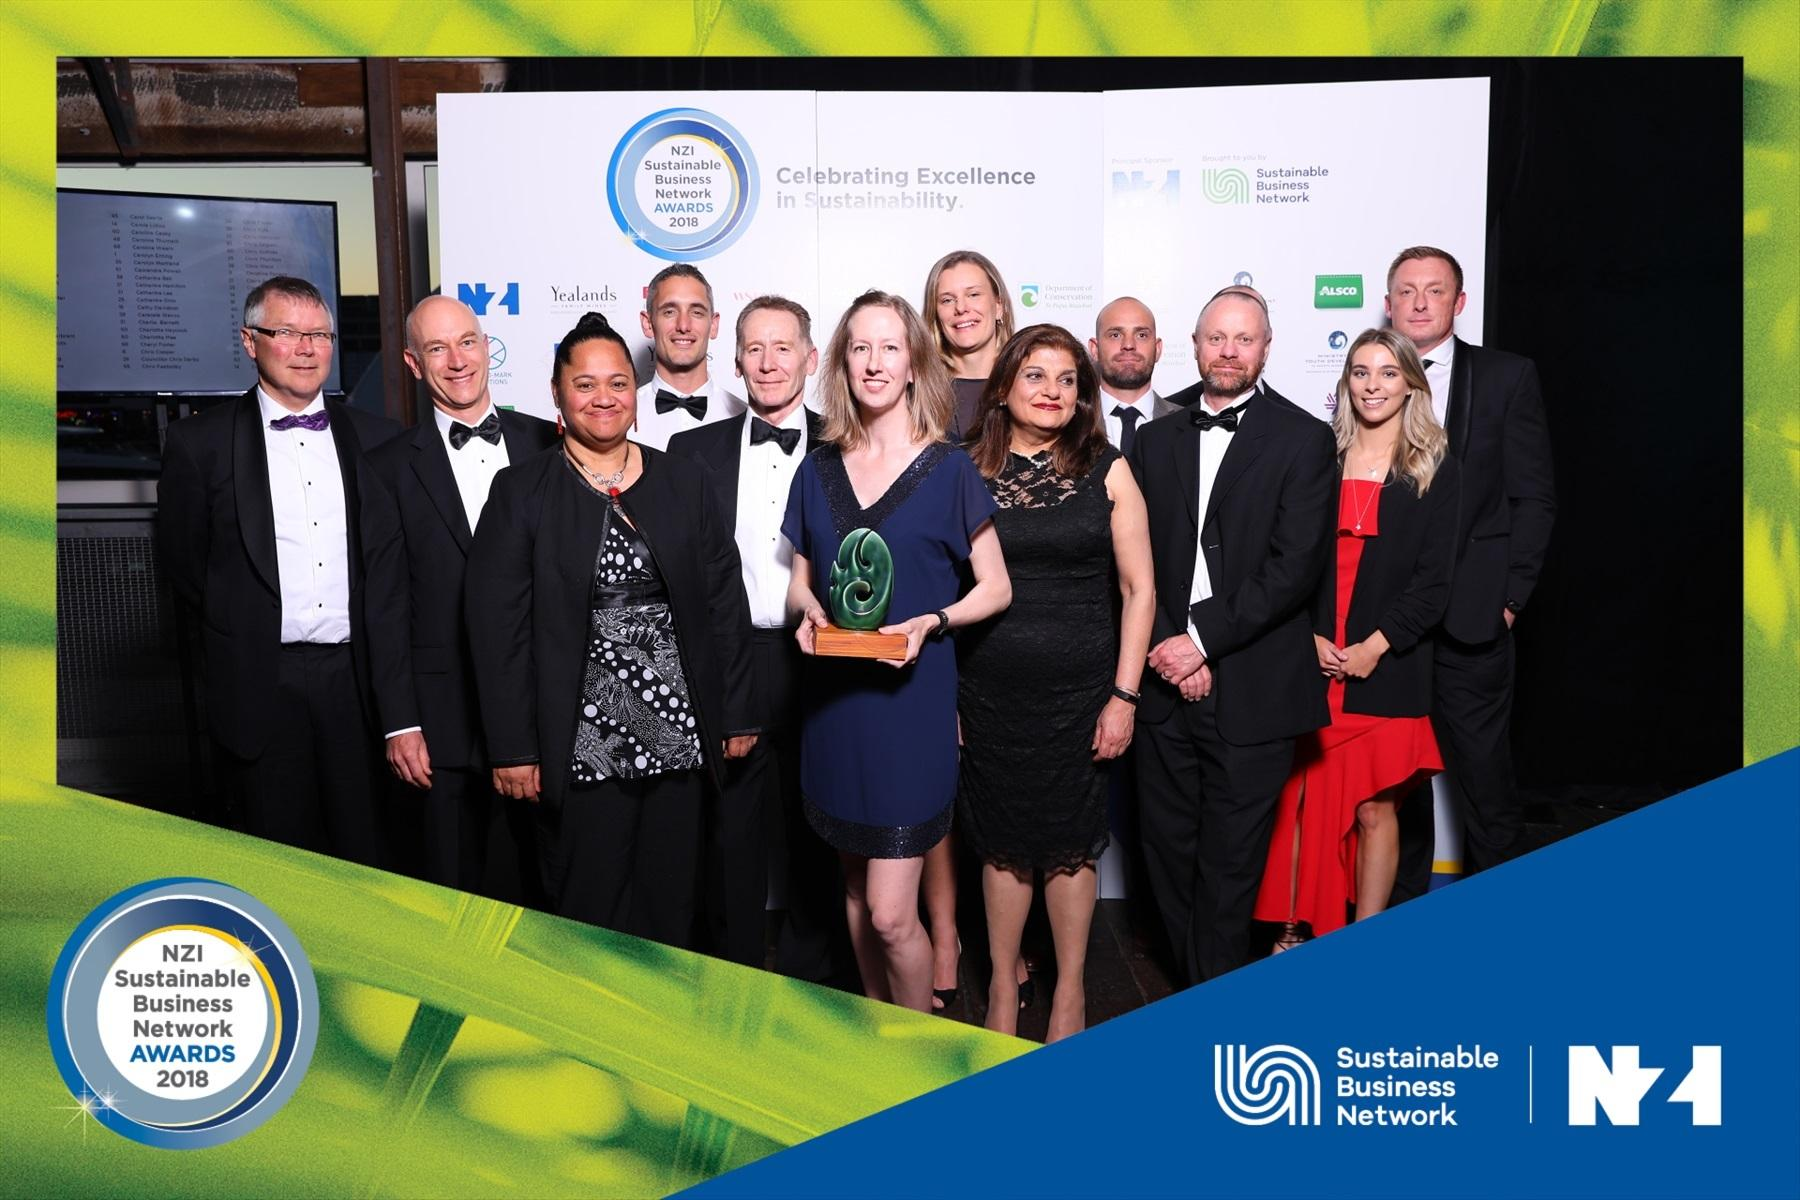 CRL team, award winners of the Sustainable Business Network's Supreme Award 2018